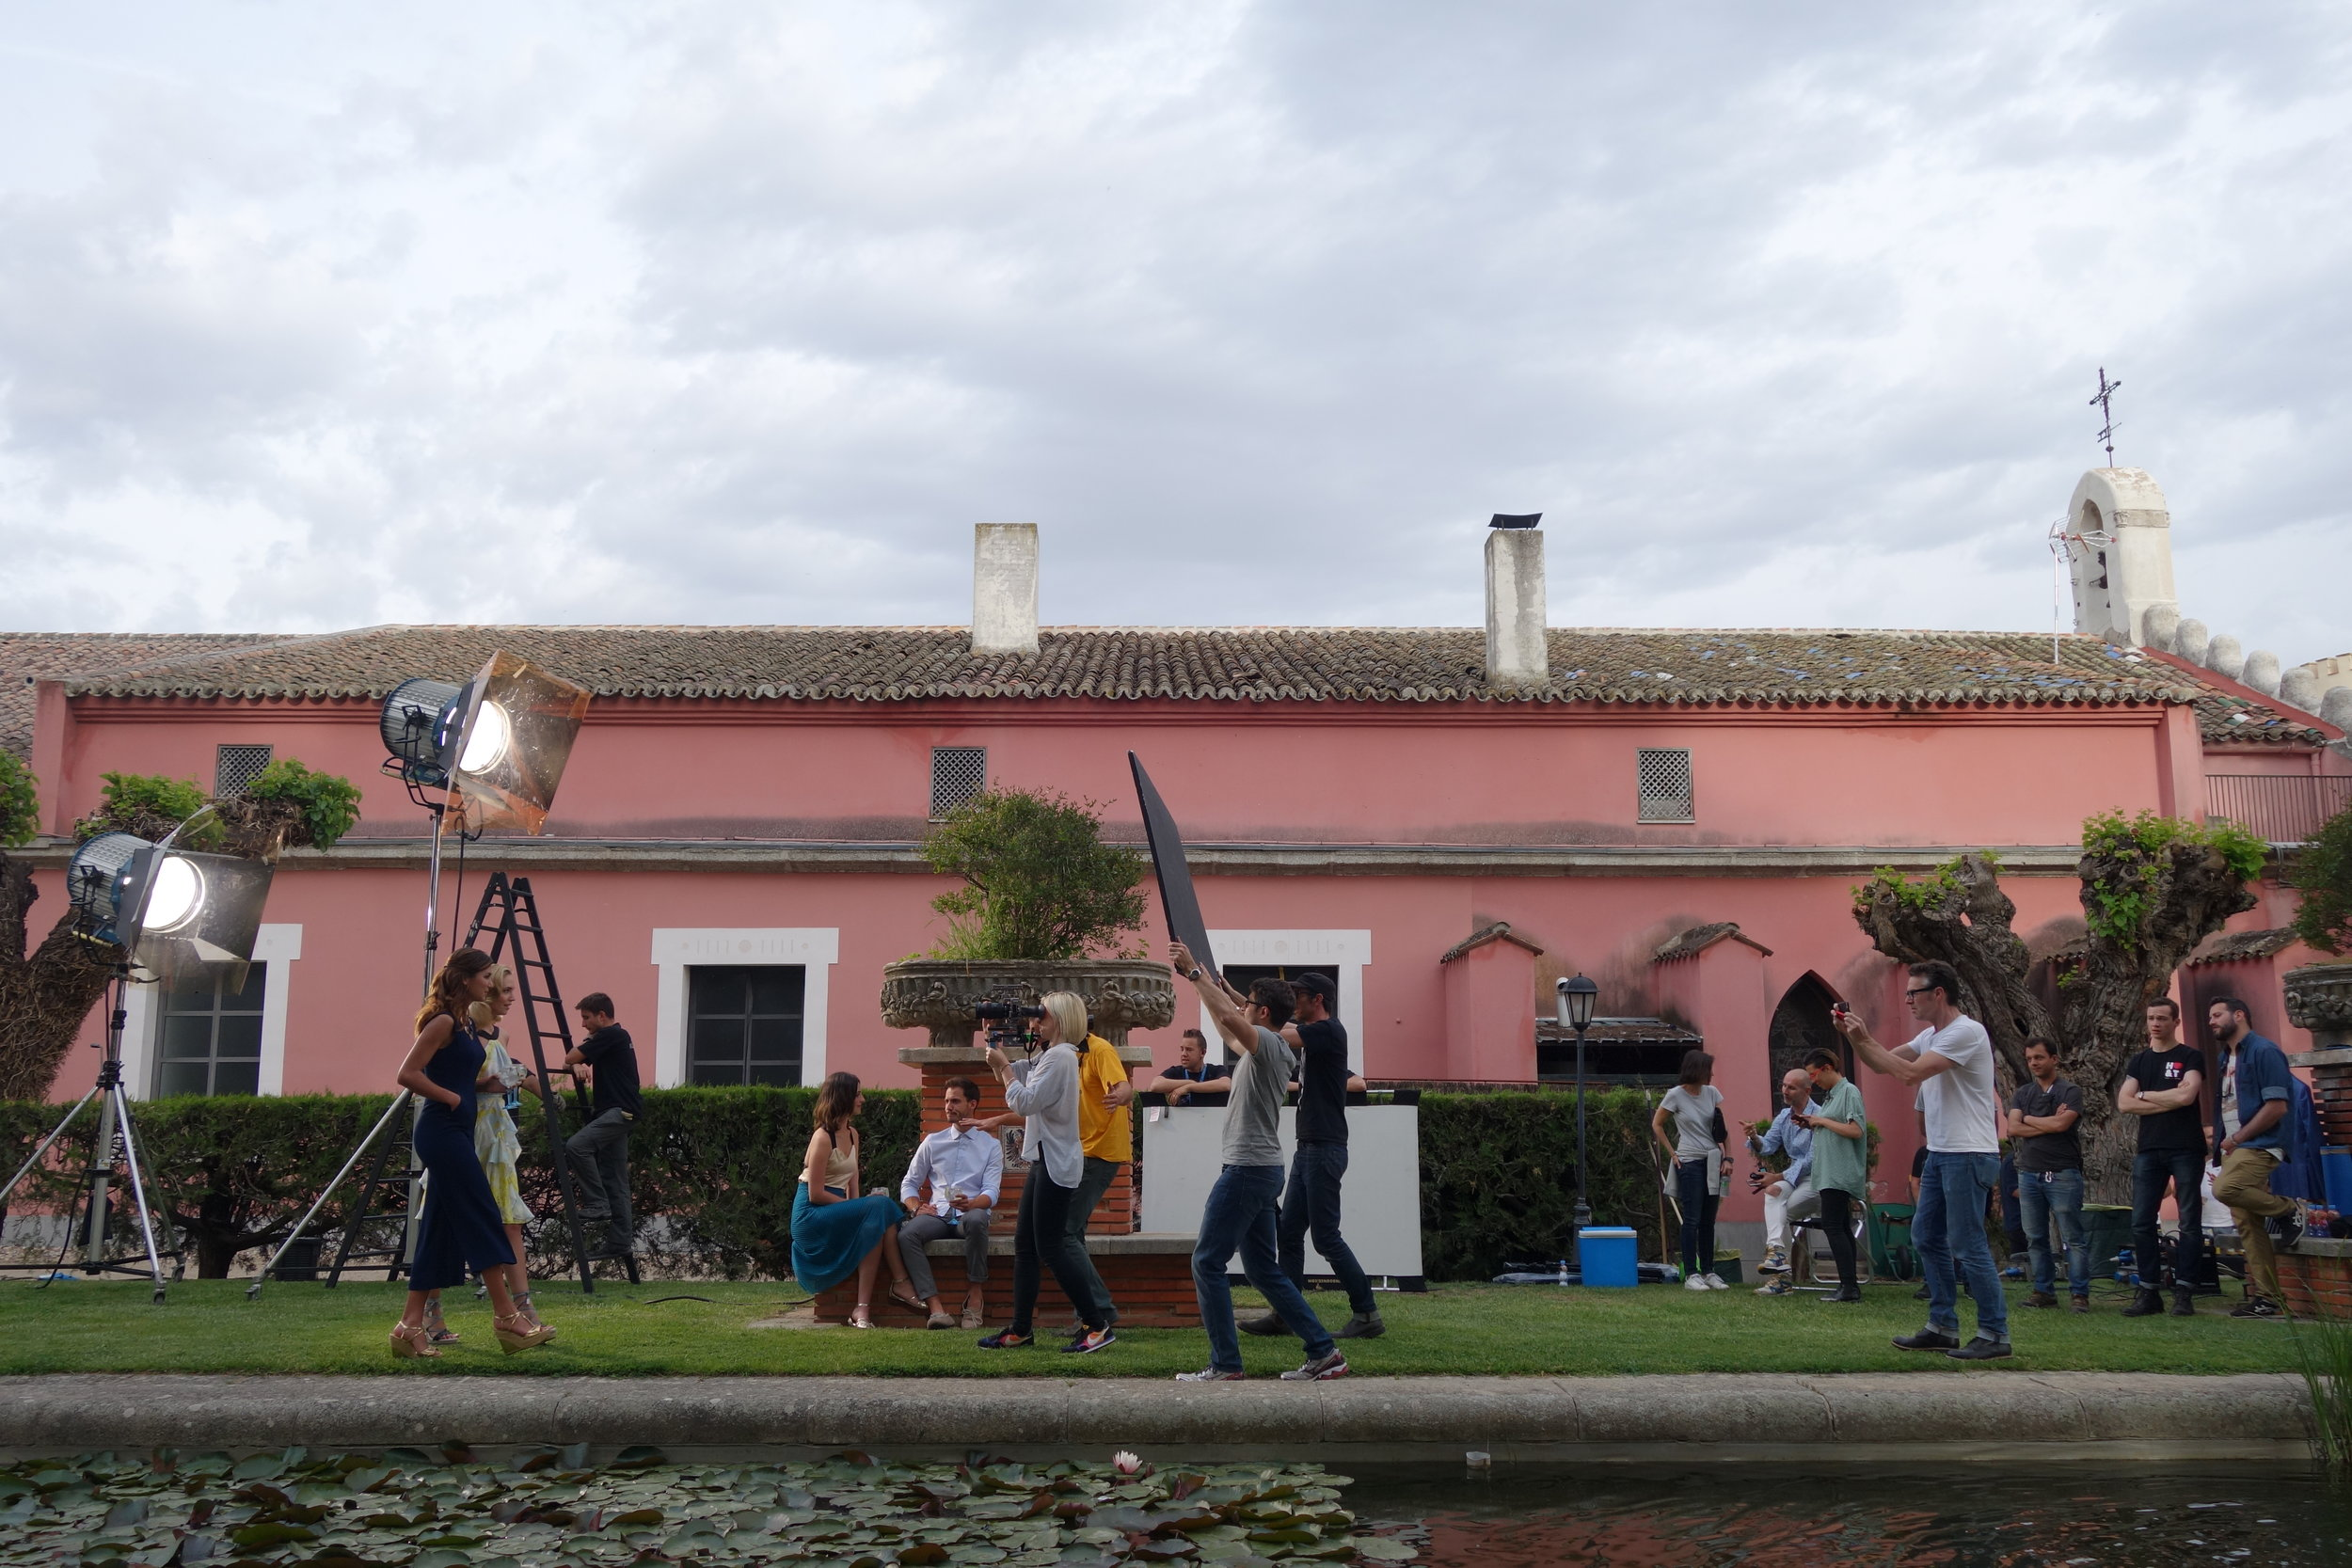 On set for Bombay Sapphire.